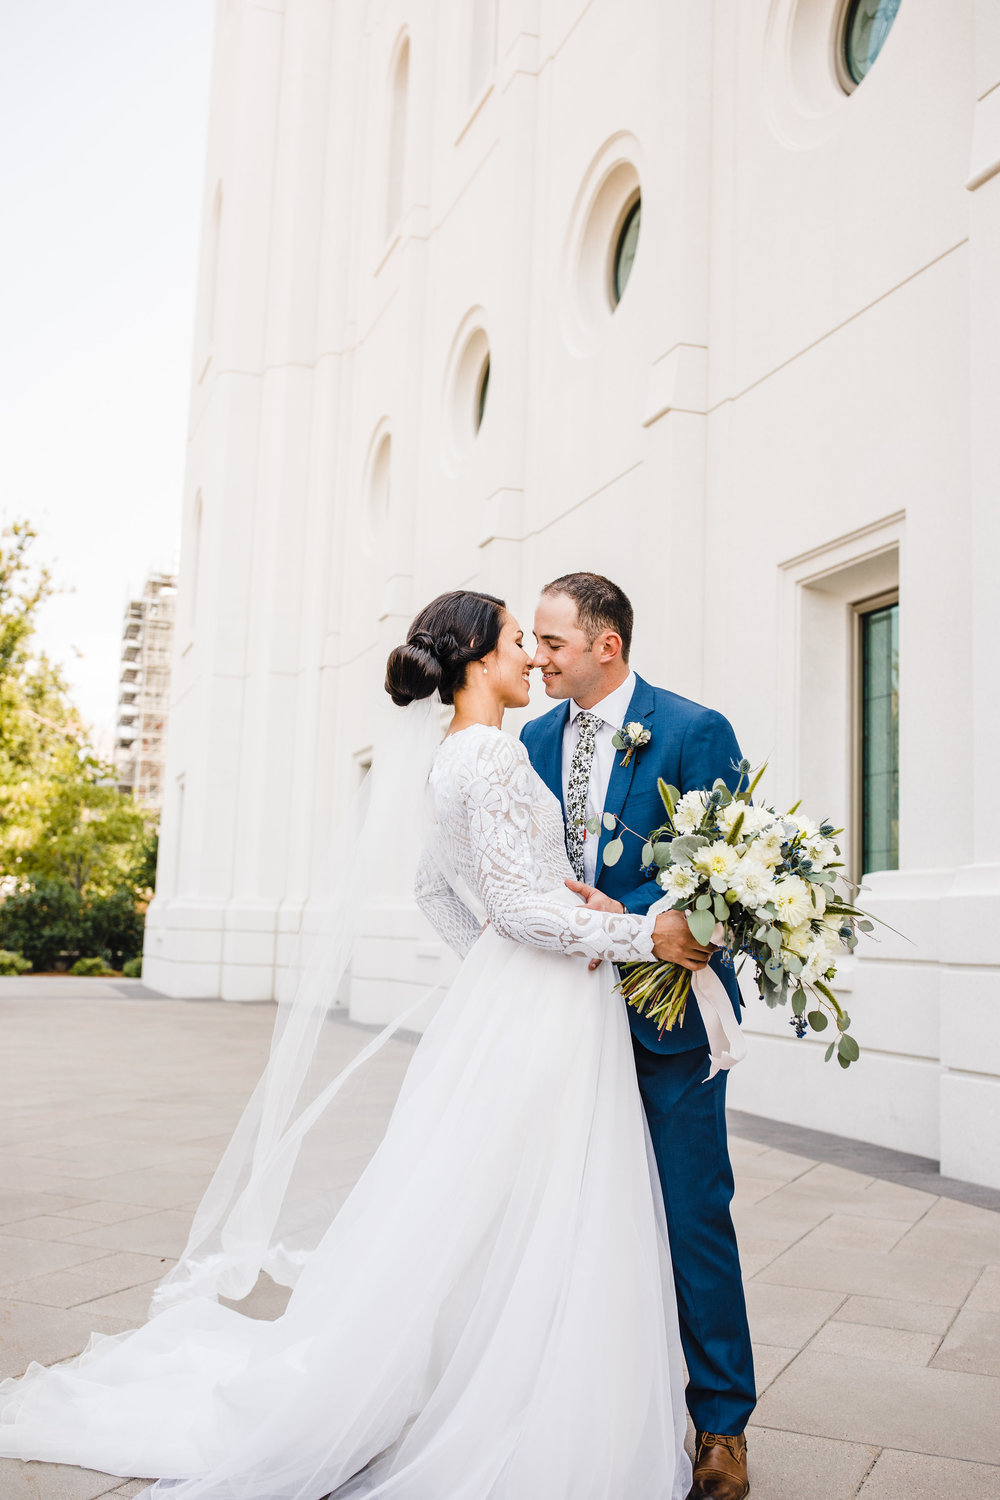 professional wedding photographer in brigham city utah smiling temple grounds long veil hugging